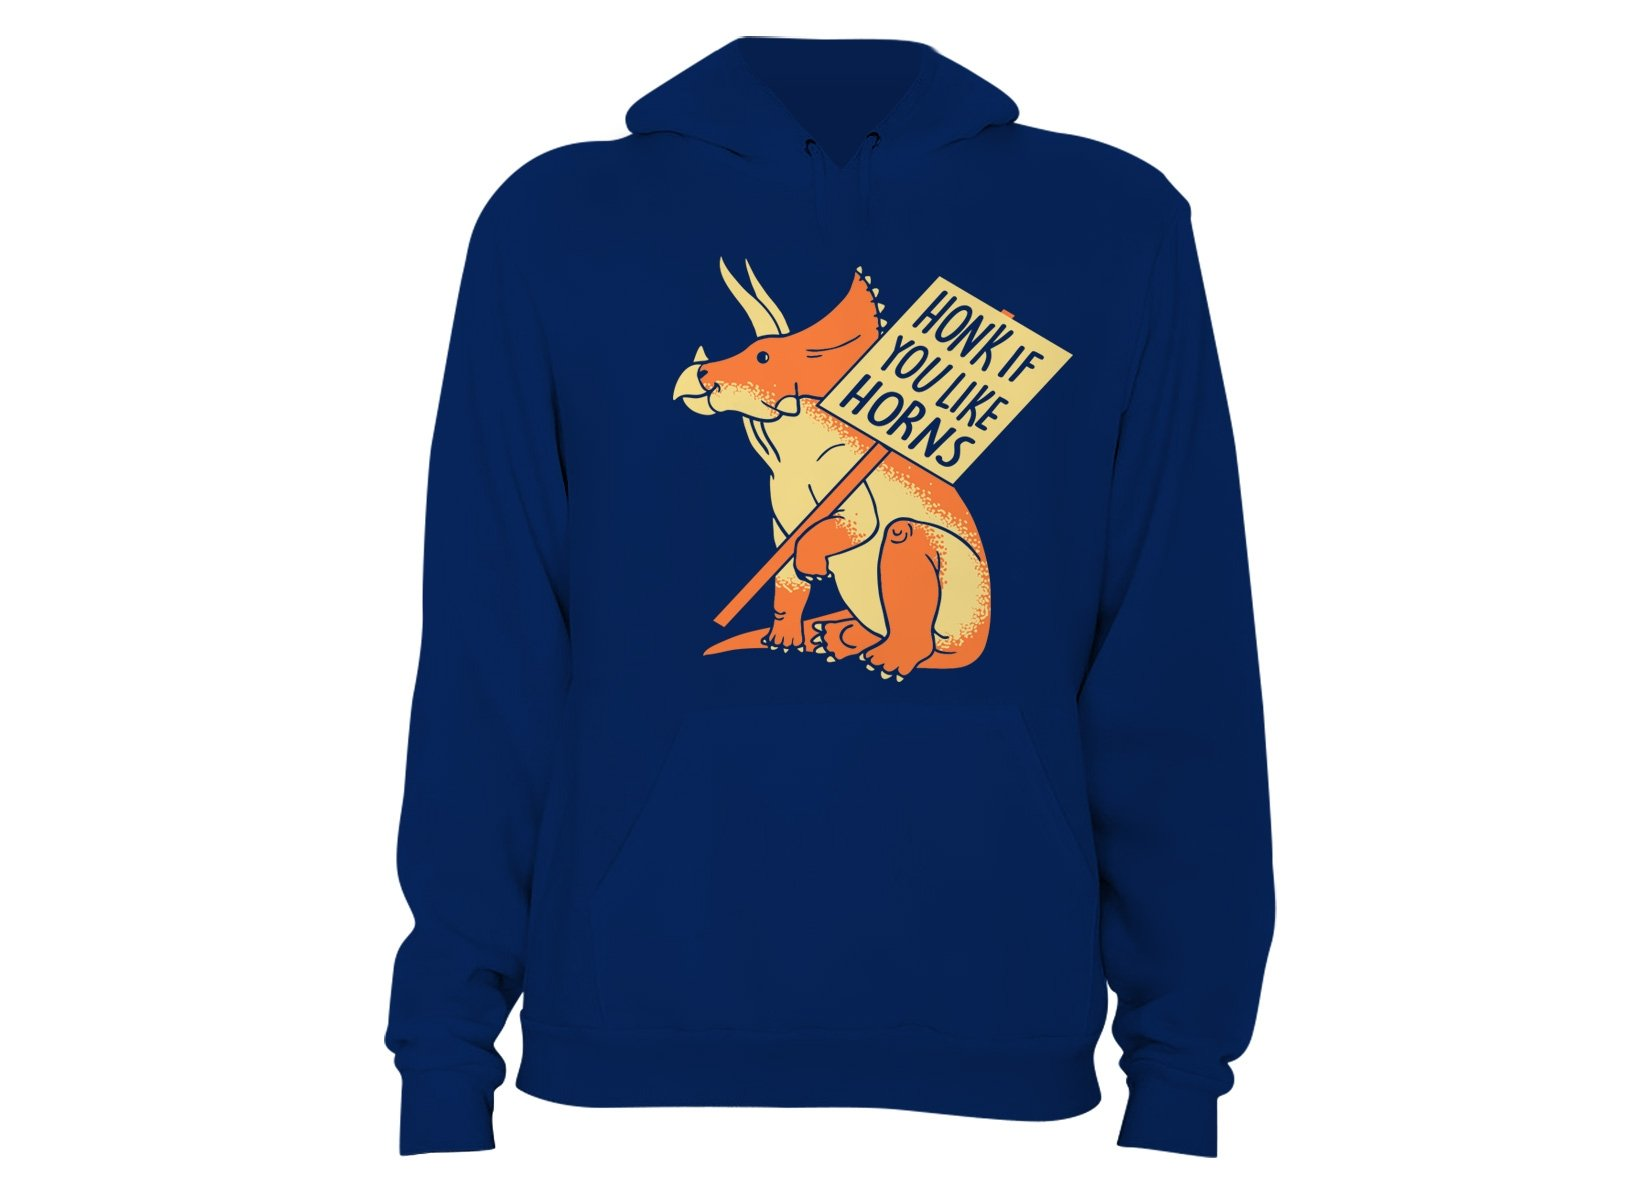 Honk If You Like Horns on Hoodie